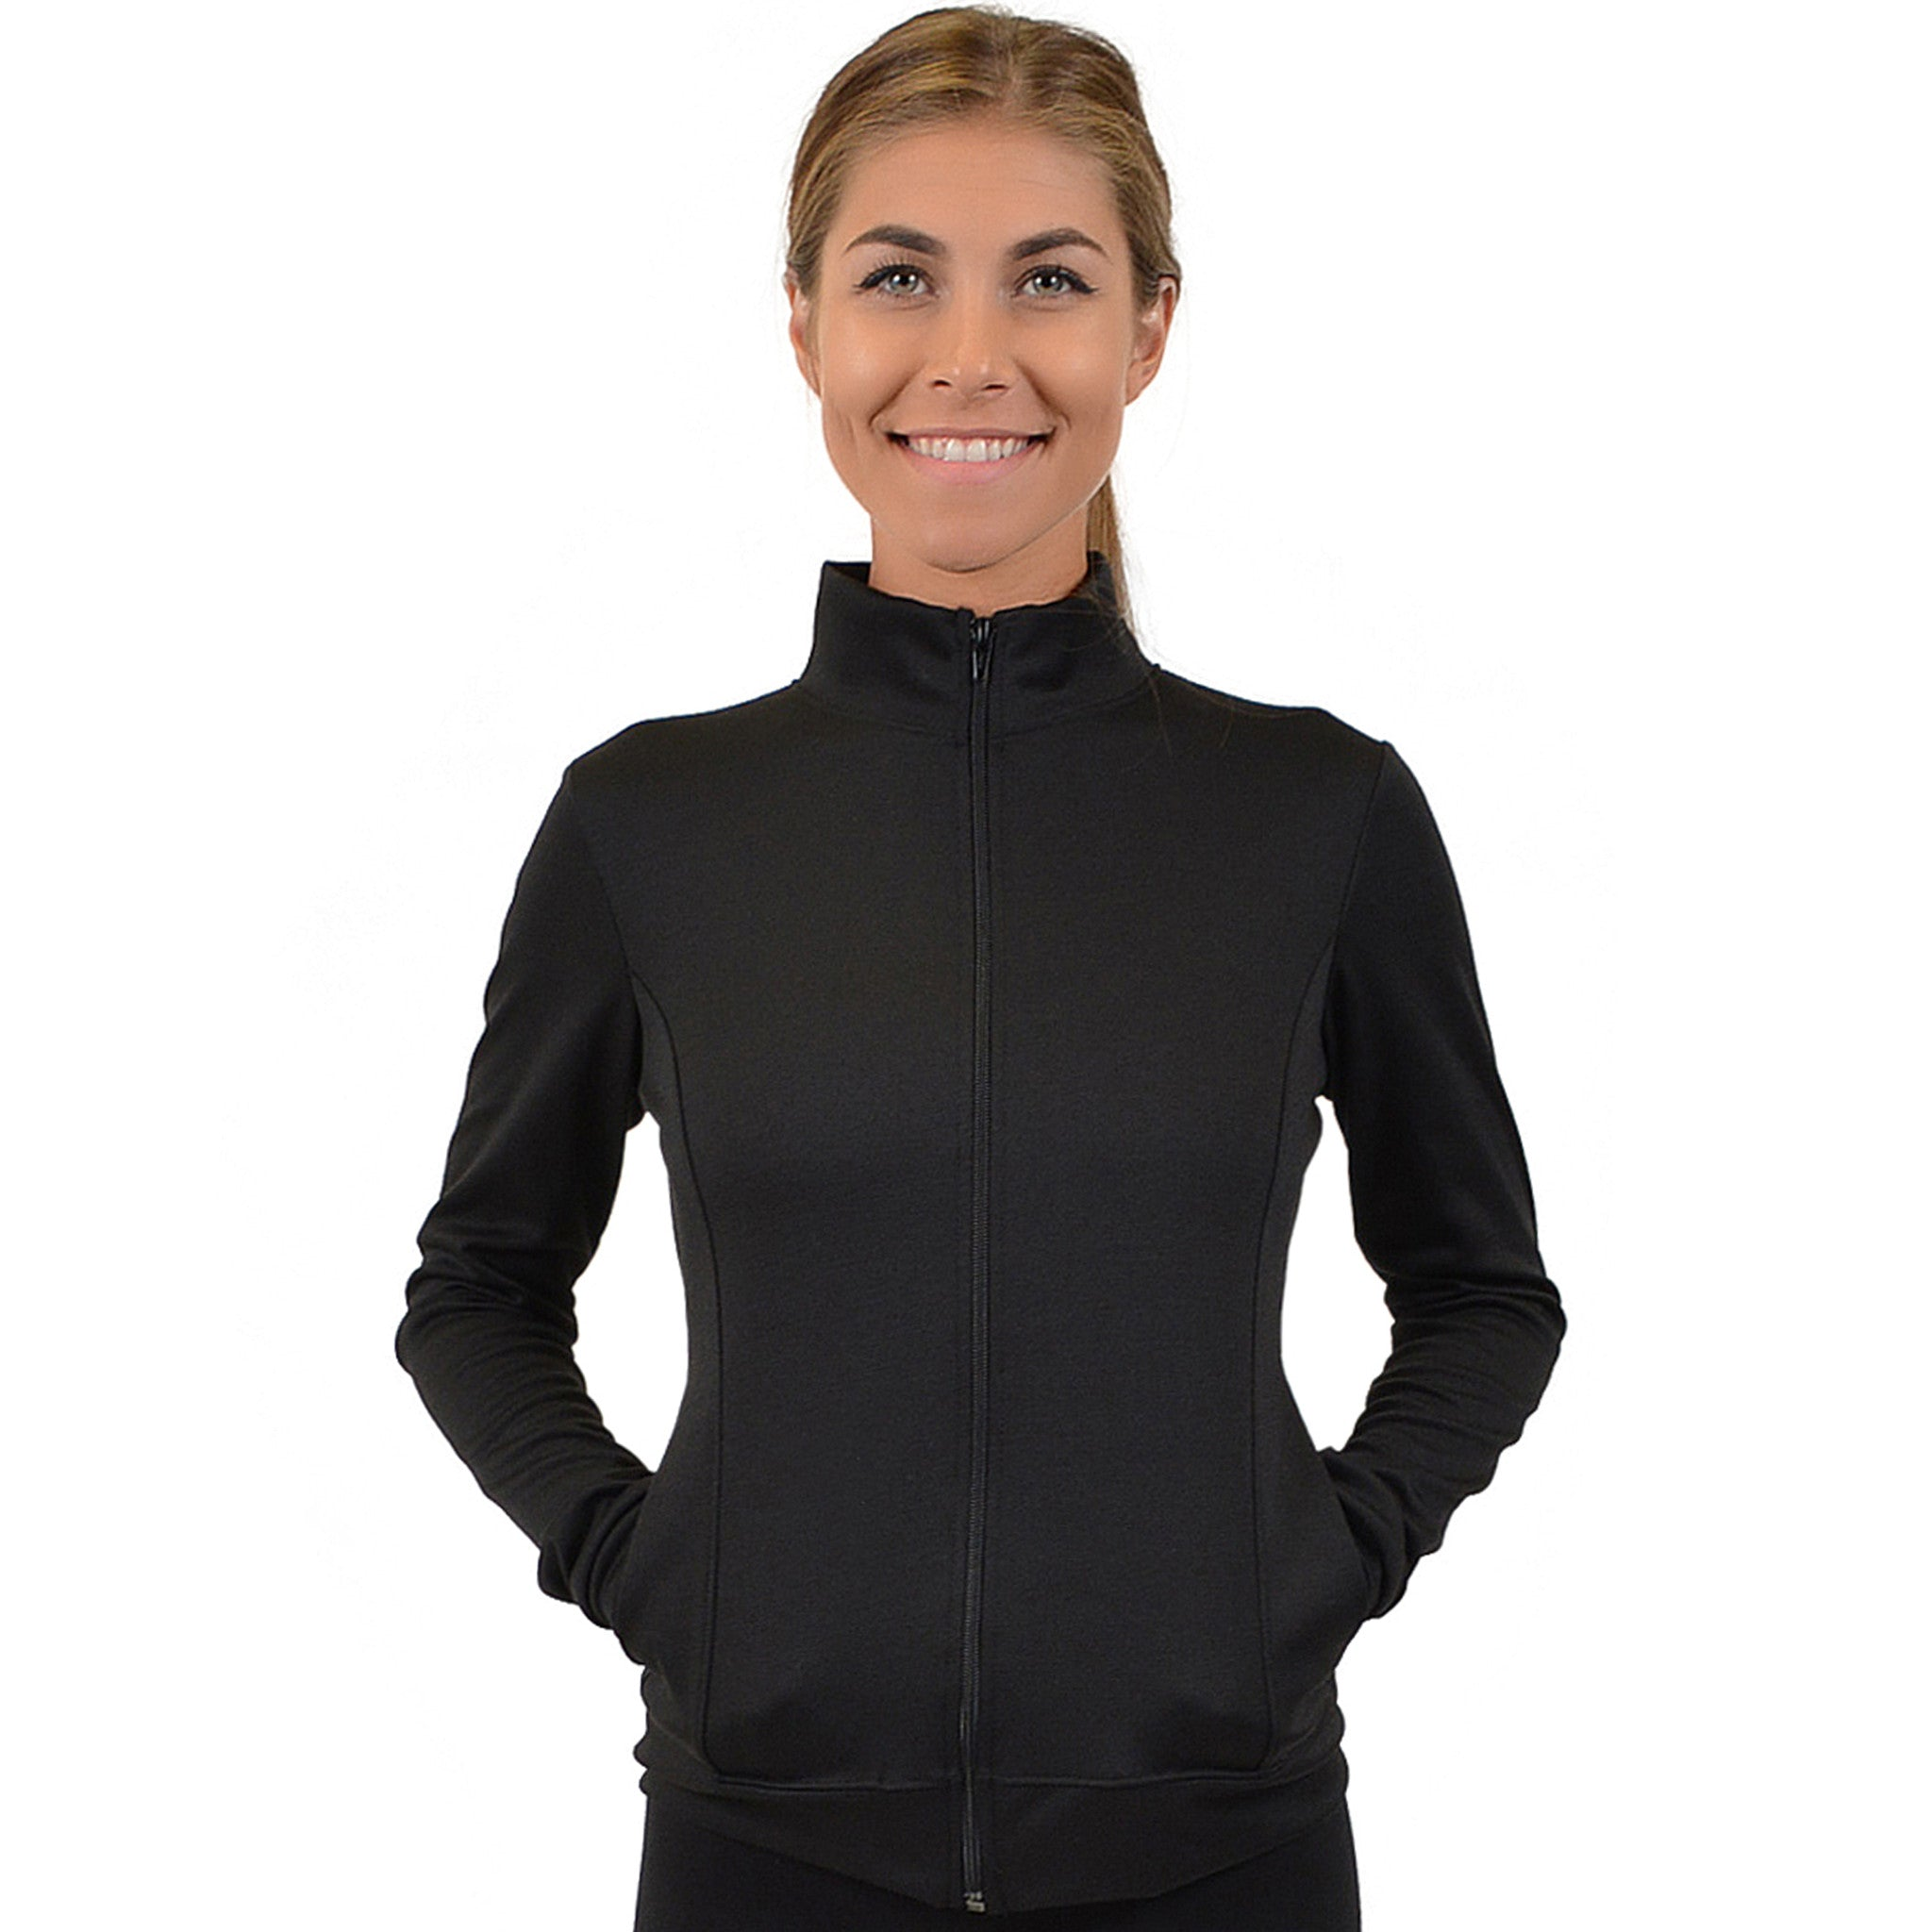 Personalizable and Customizable Women's Cotton Warm Up Jacket